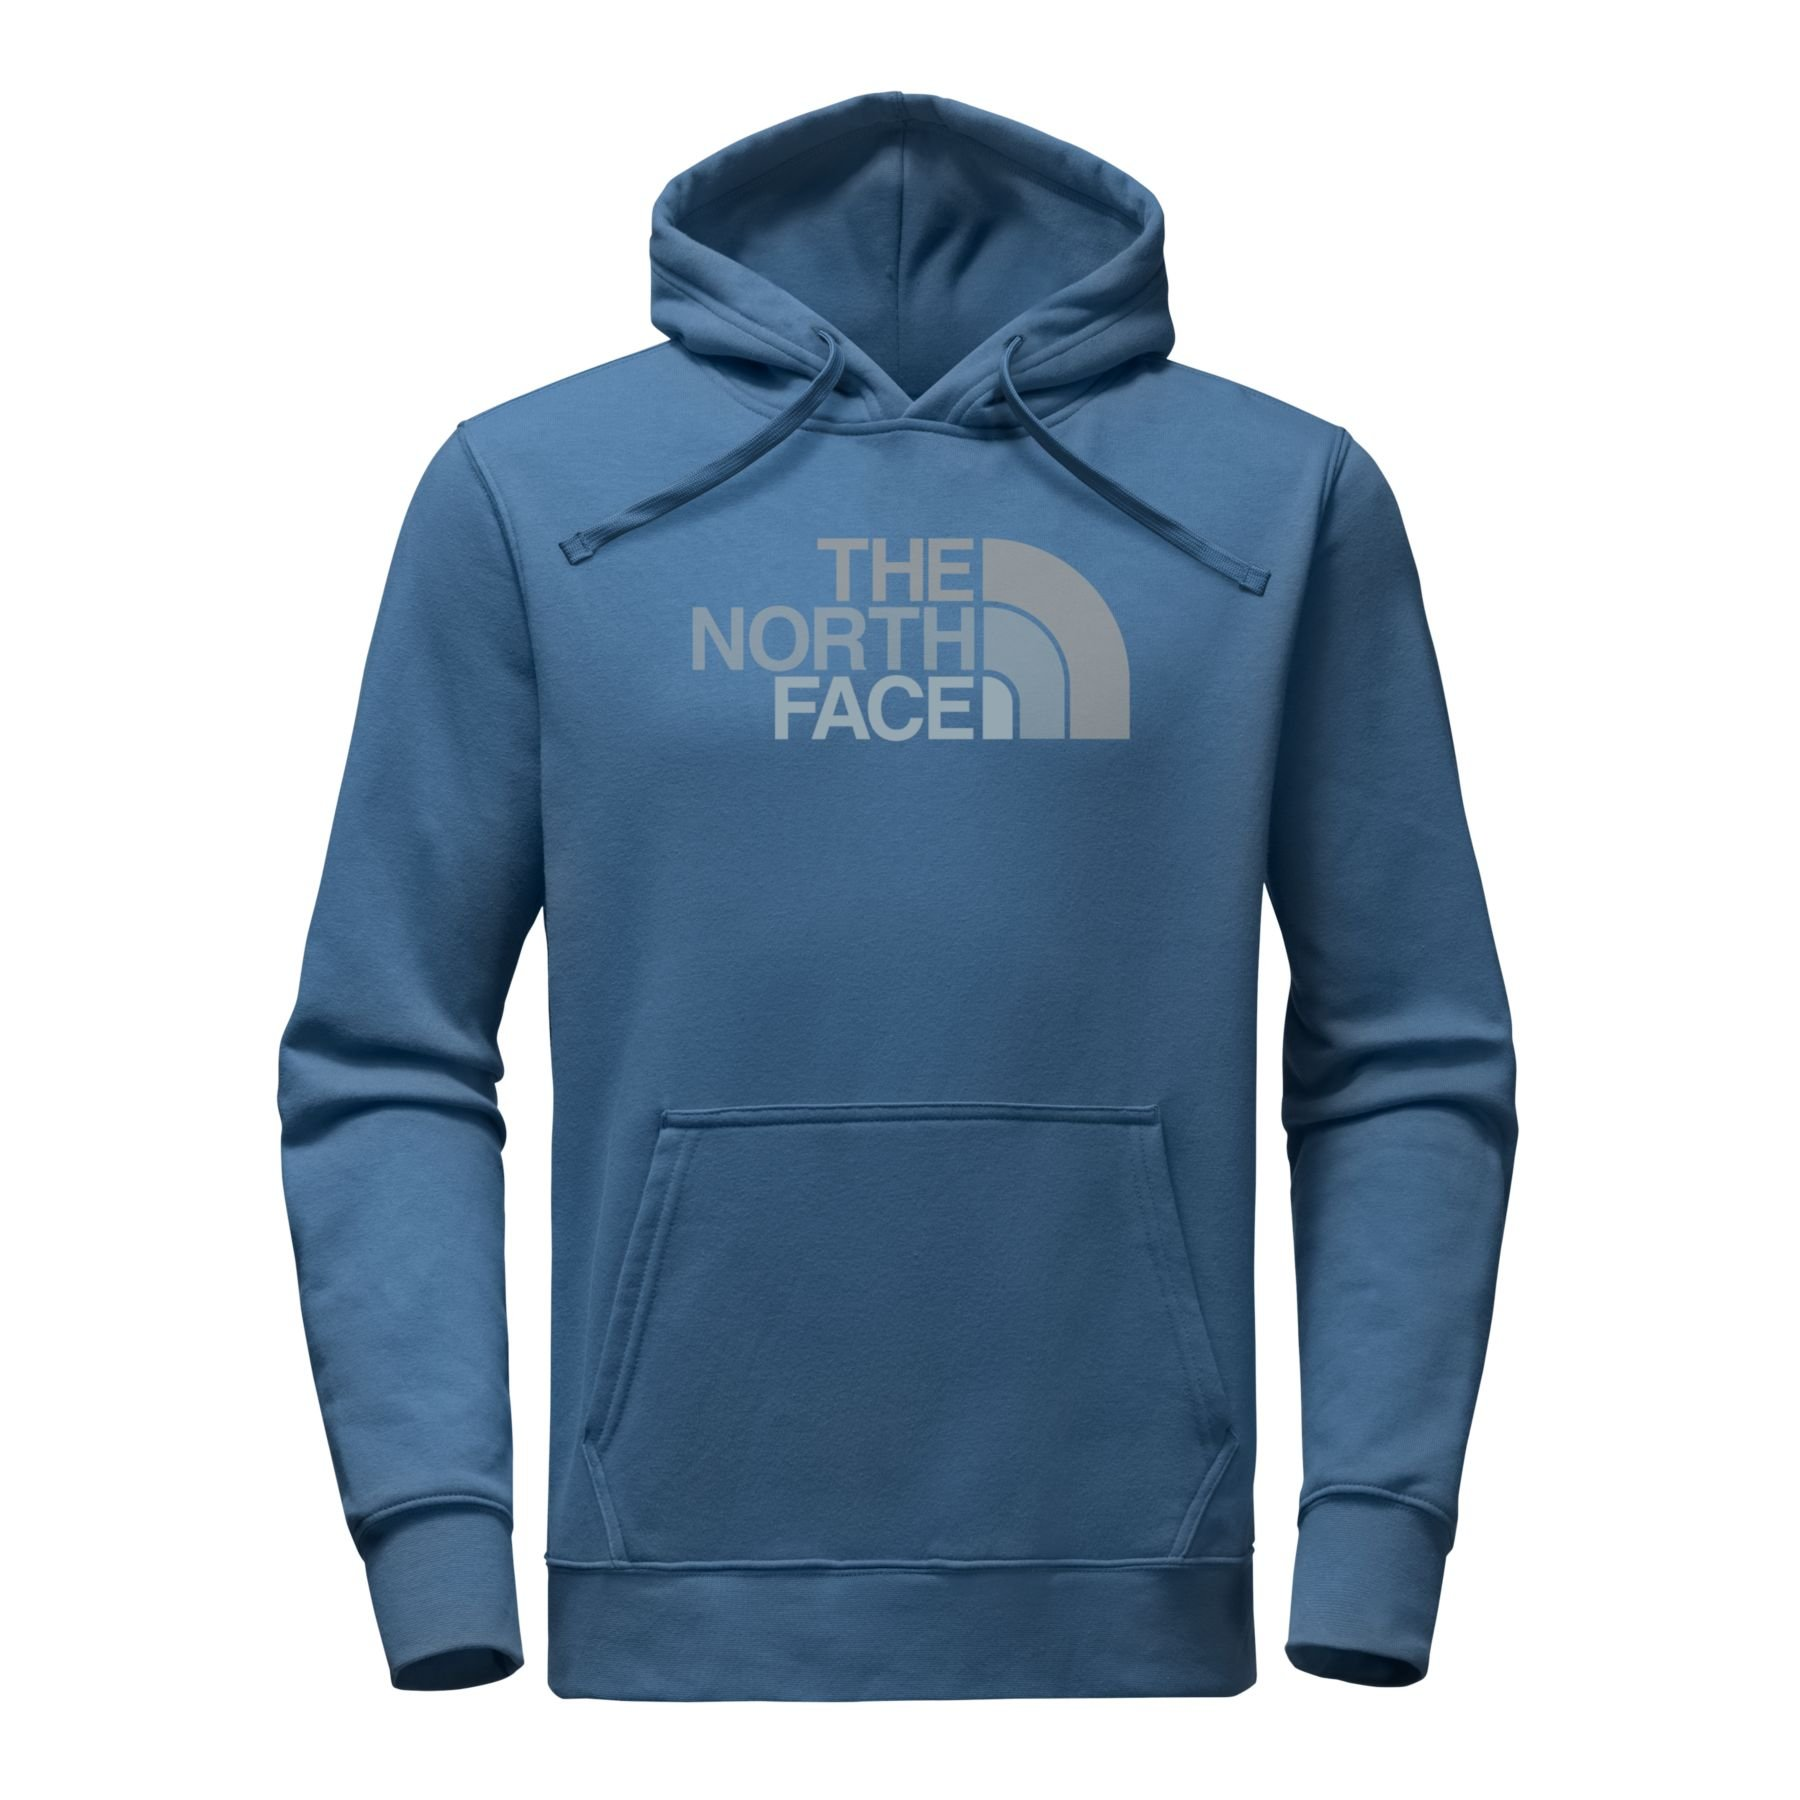 The North Face Men's Half Dome Hoodie - Brit Blue/Dusty Blue Multi - M